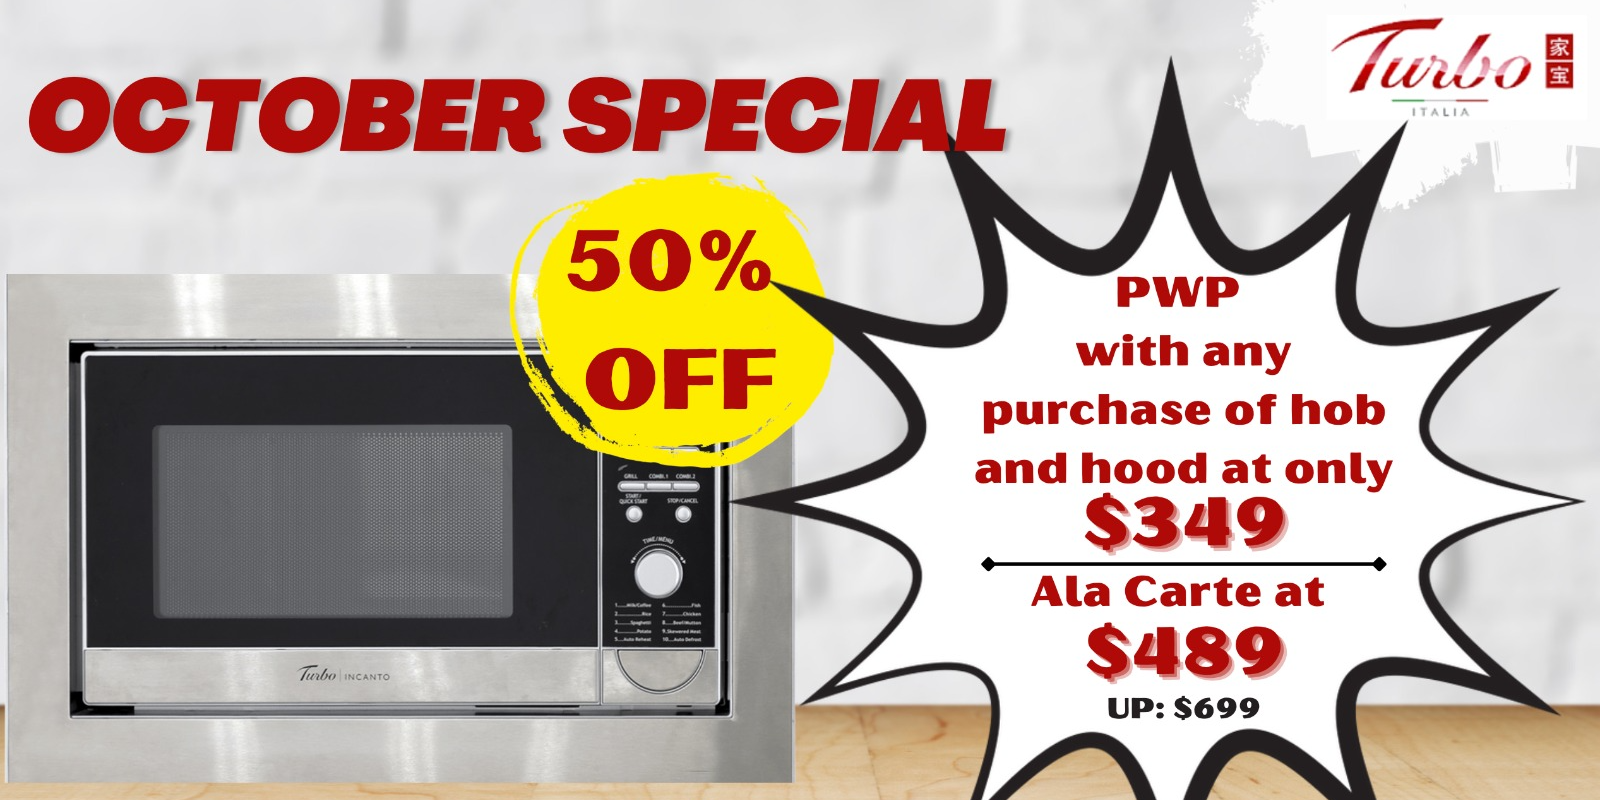 [Turbo Oct Special] 50% OFF Turbo Incanto Microwave Oven with Grill with Any Purchase of Hob & Hood!